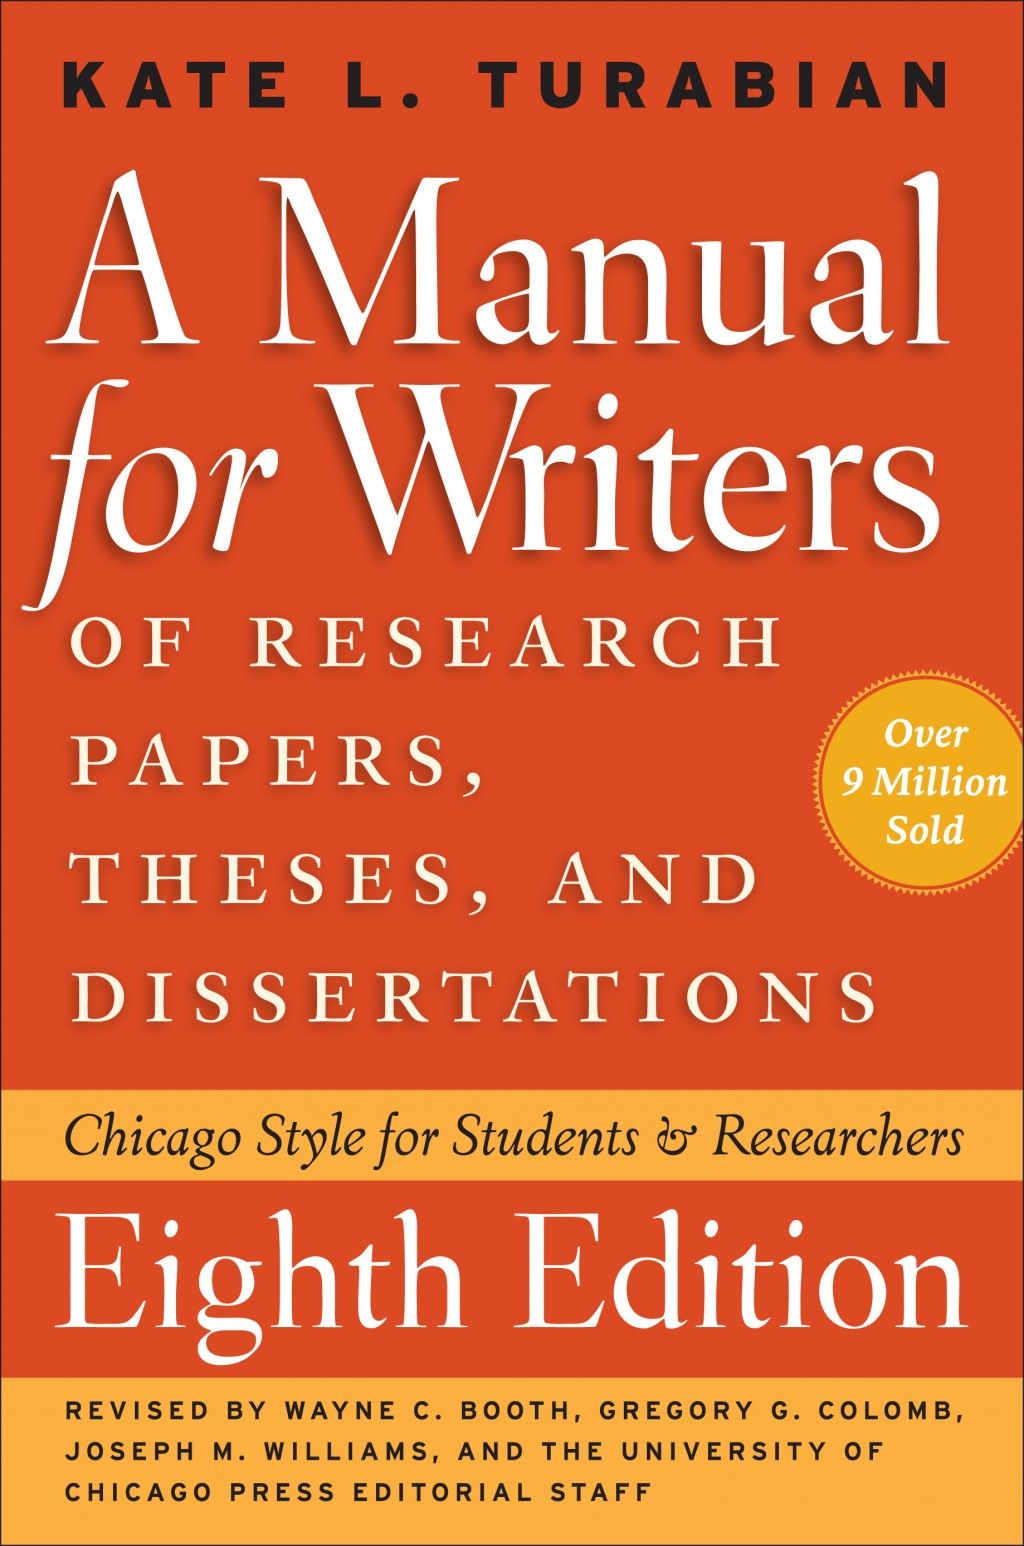 012 Turabian Guide Cover Manual For Writers Of Researchs Theses And Dissertations 9th Edition Pdf Wonderful A Research Papers Large